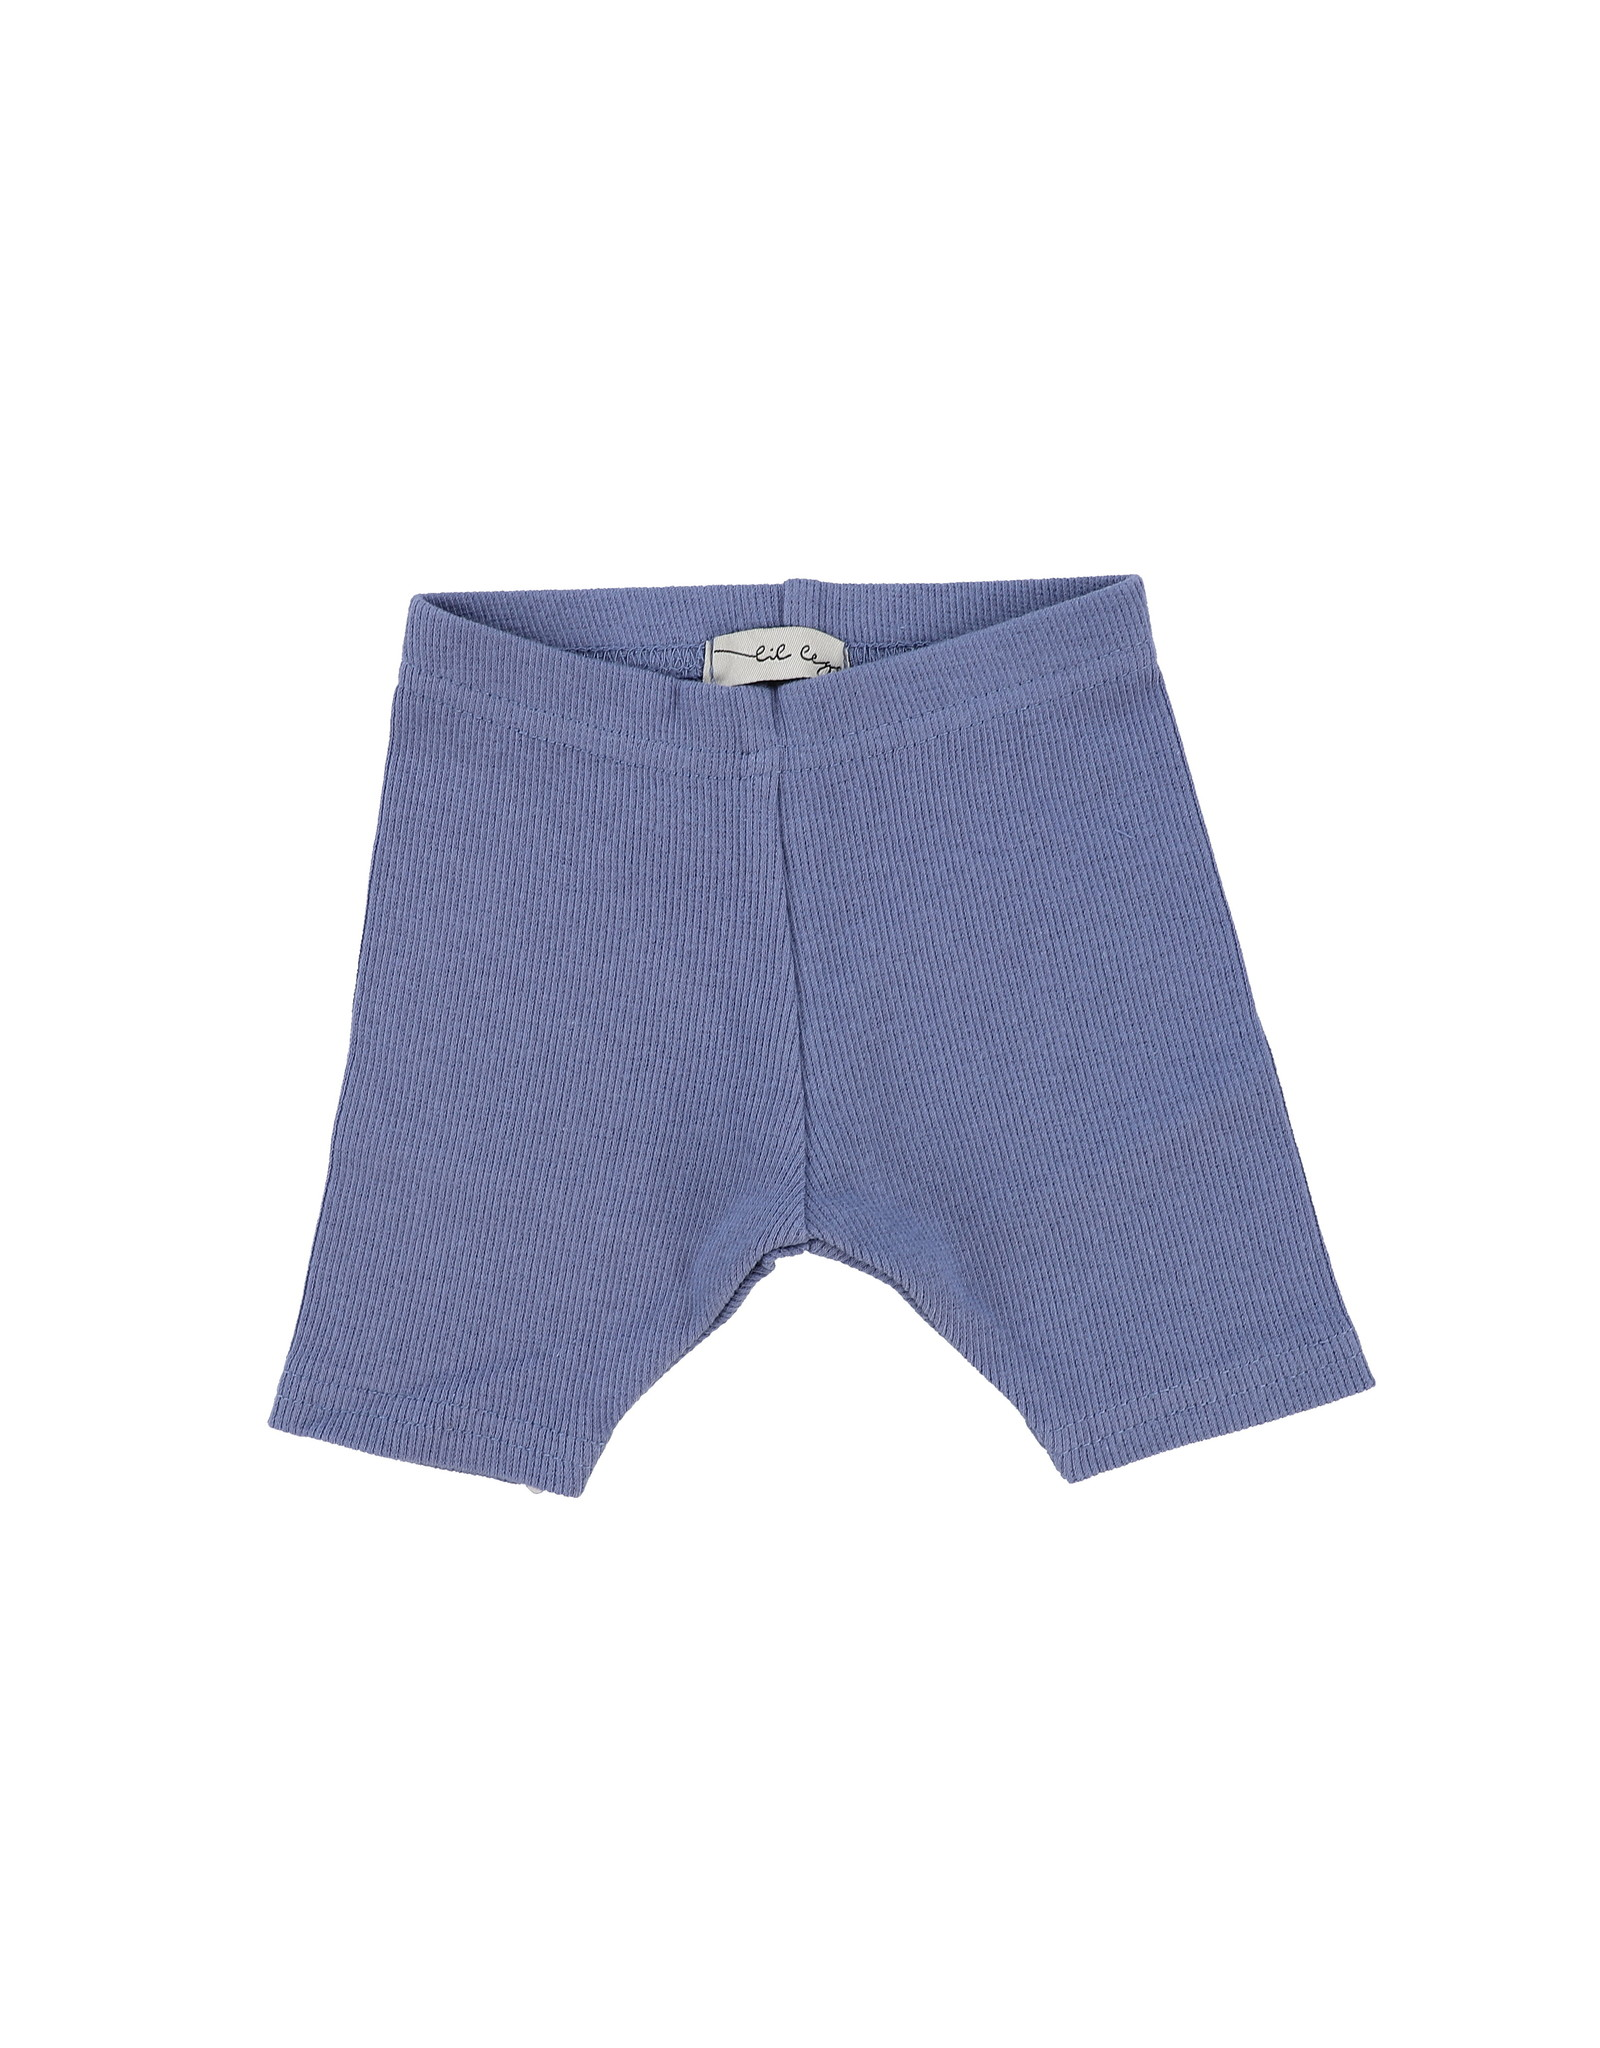 LIL LEGS SS20 Ribbed Shorts Fashion Colors